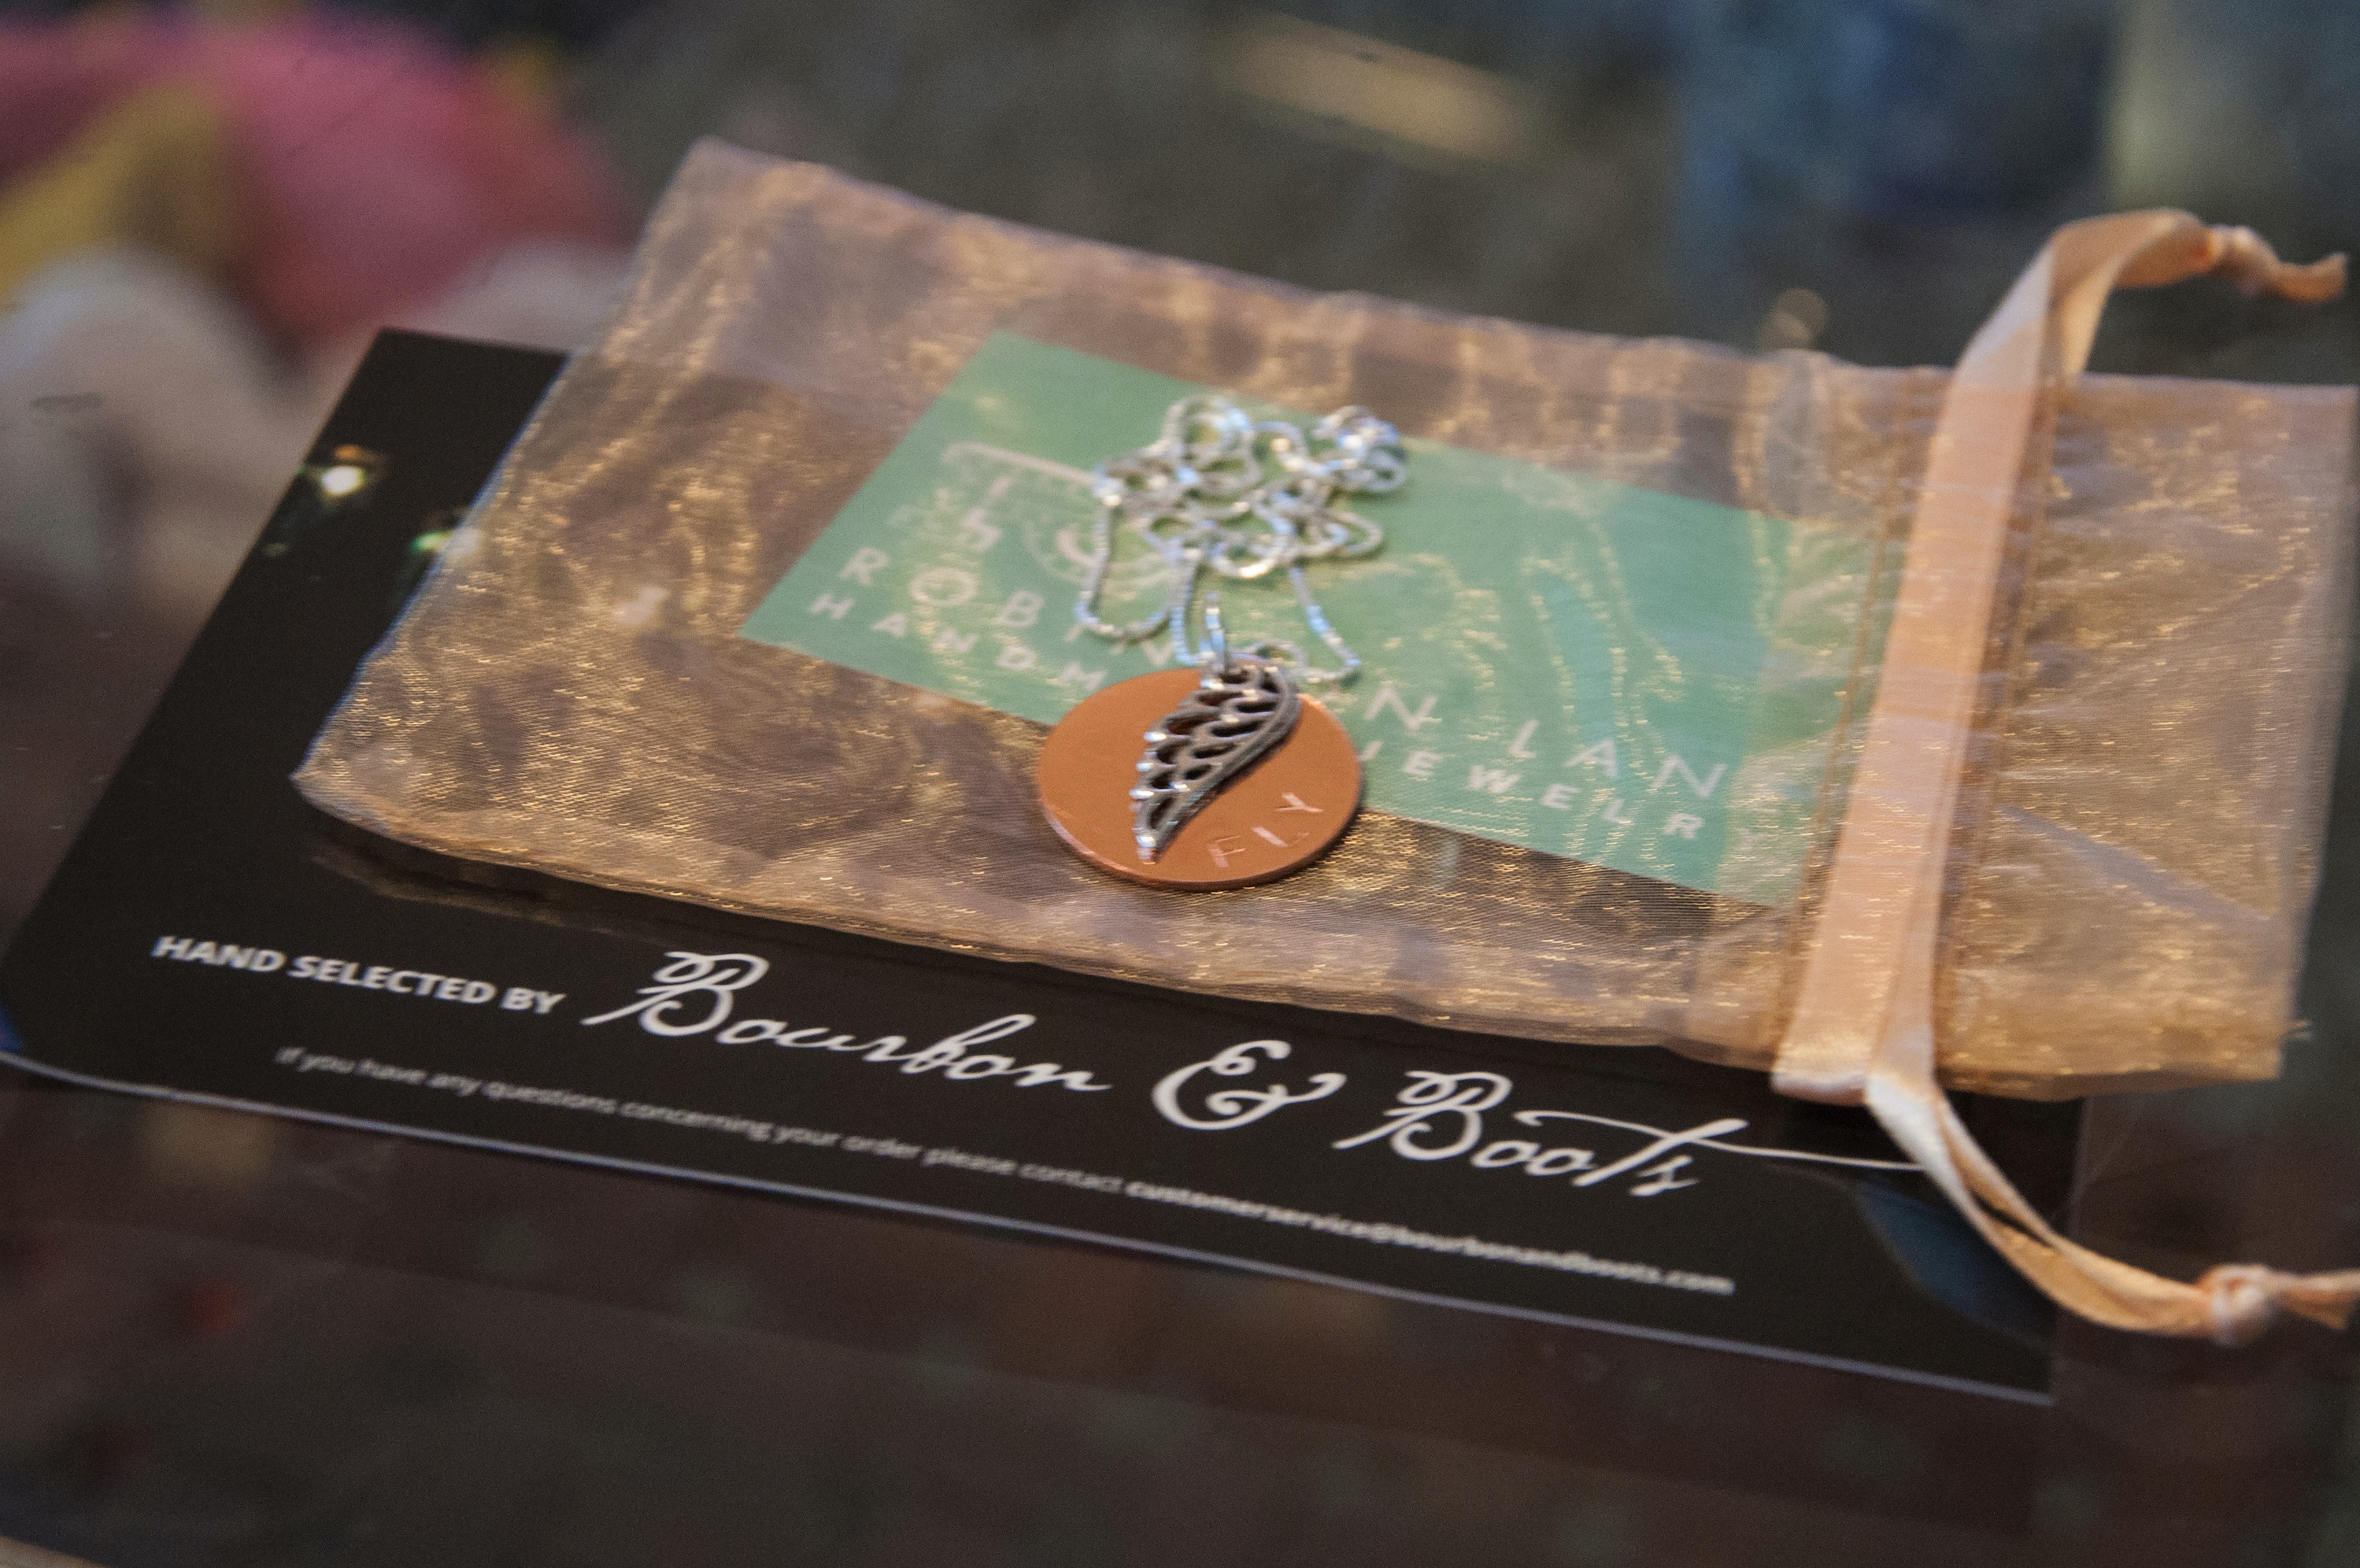 Fly necklace from Bourbon and Boots